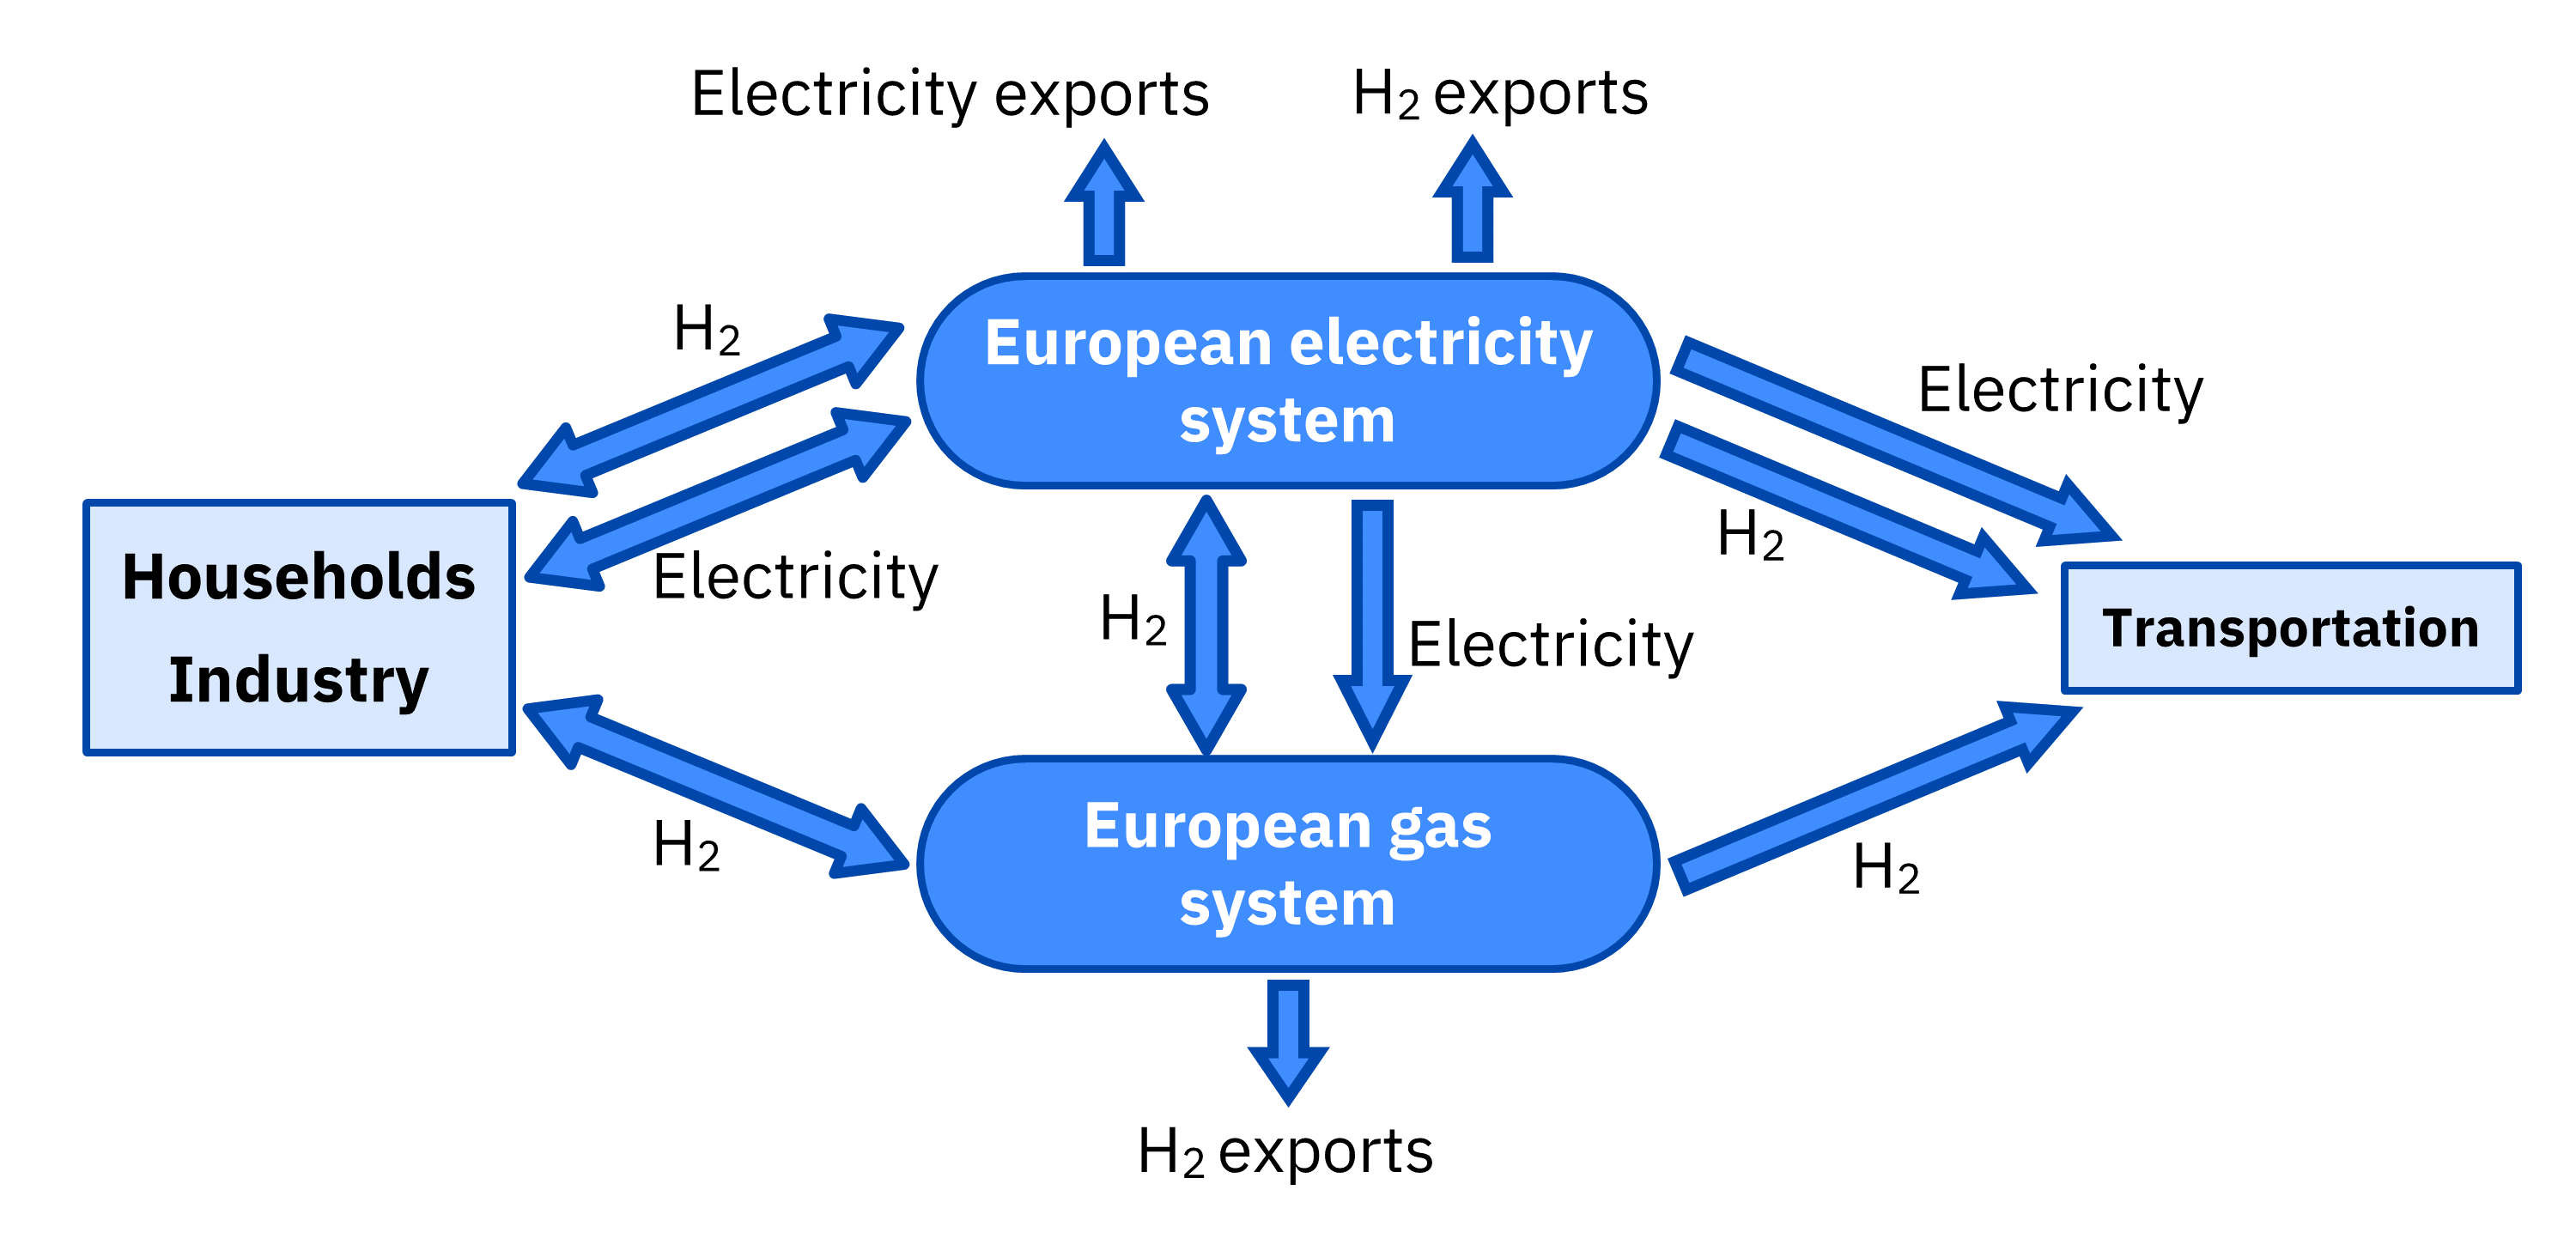 AleaSoft - Europe gas electricity system 2030